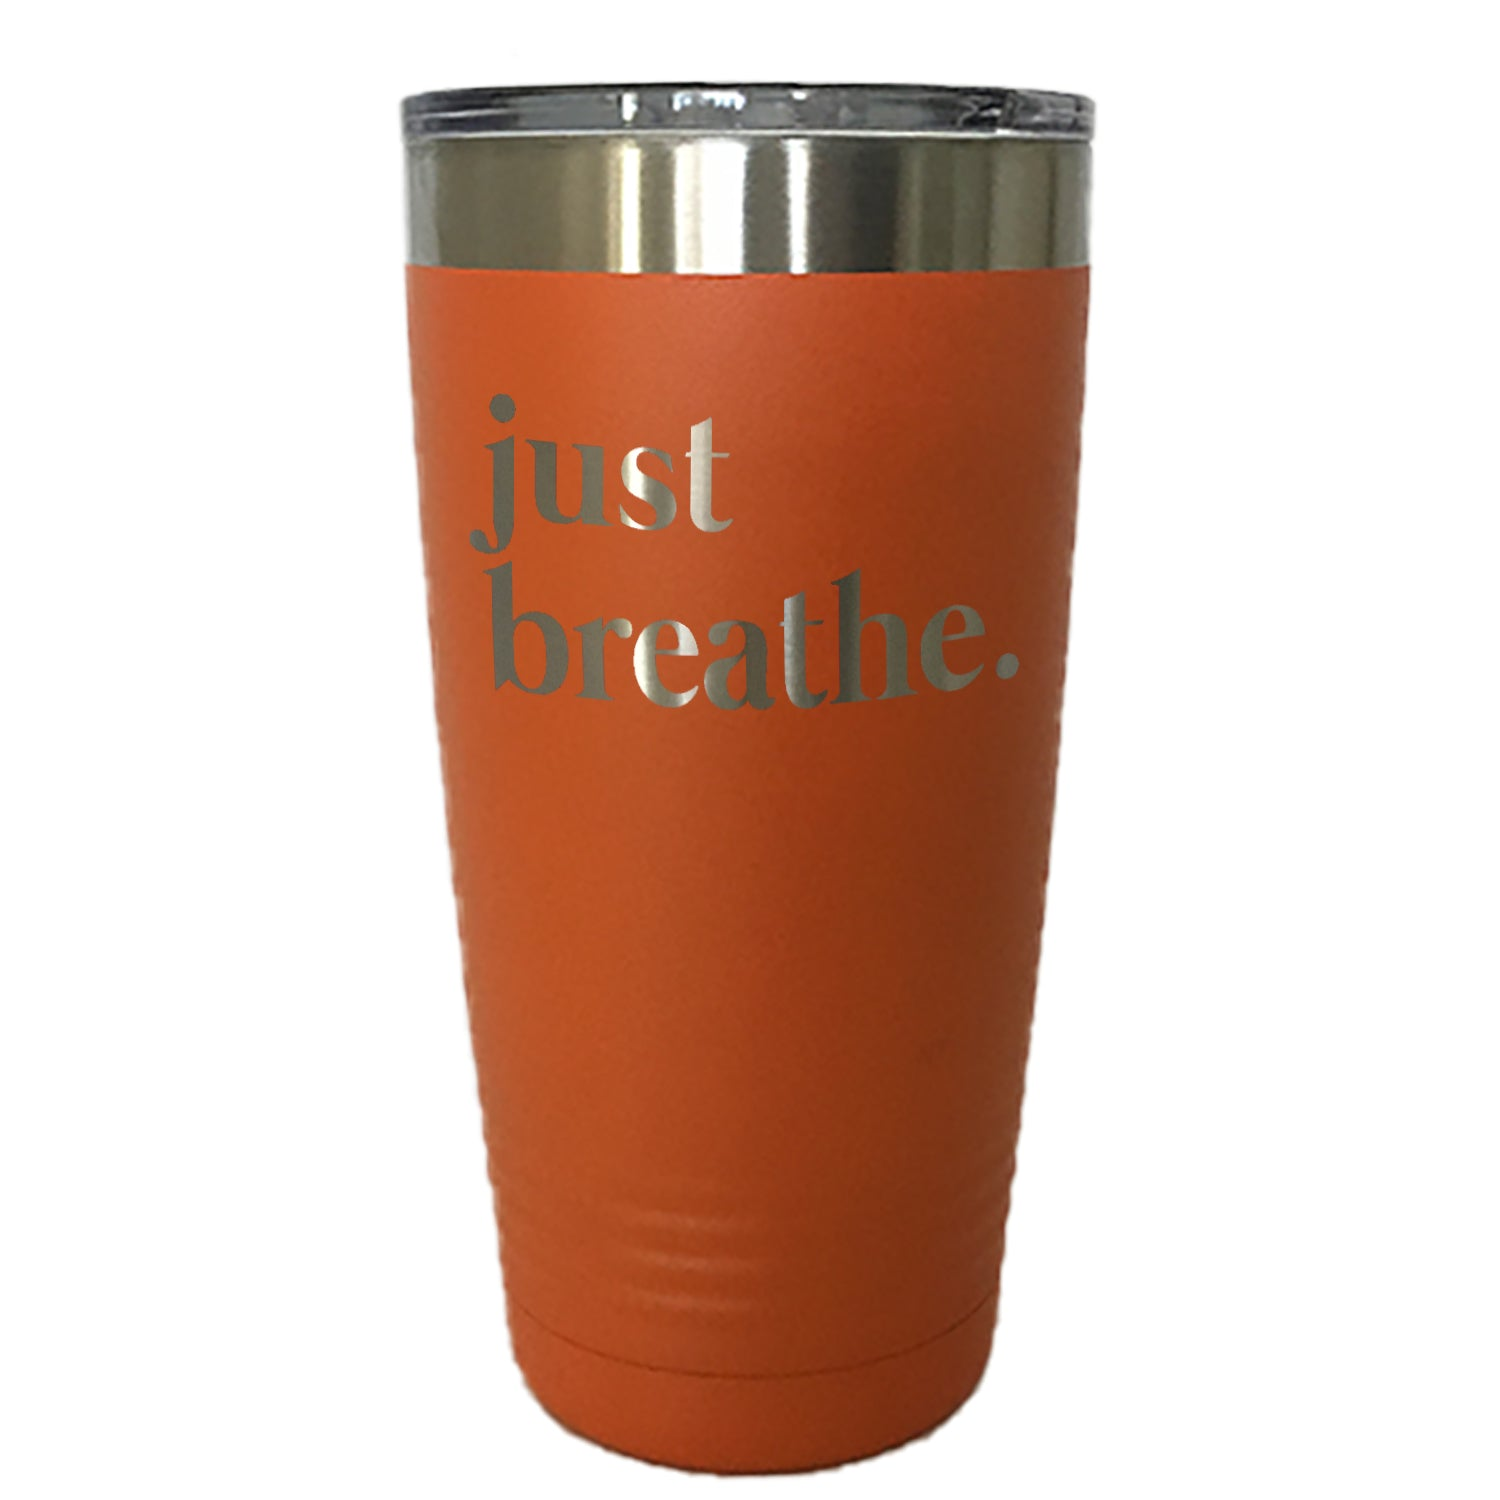 Just Breathe - Tumbler Drinkware